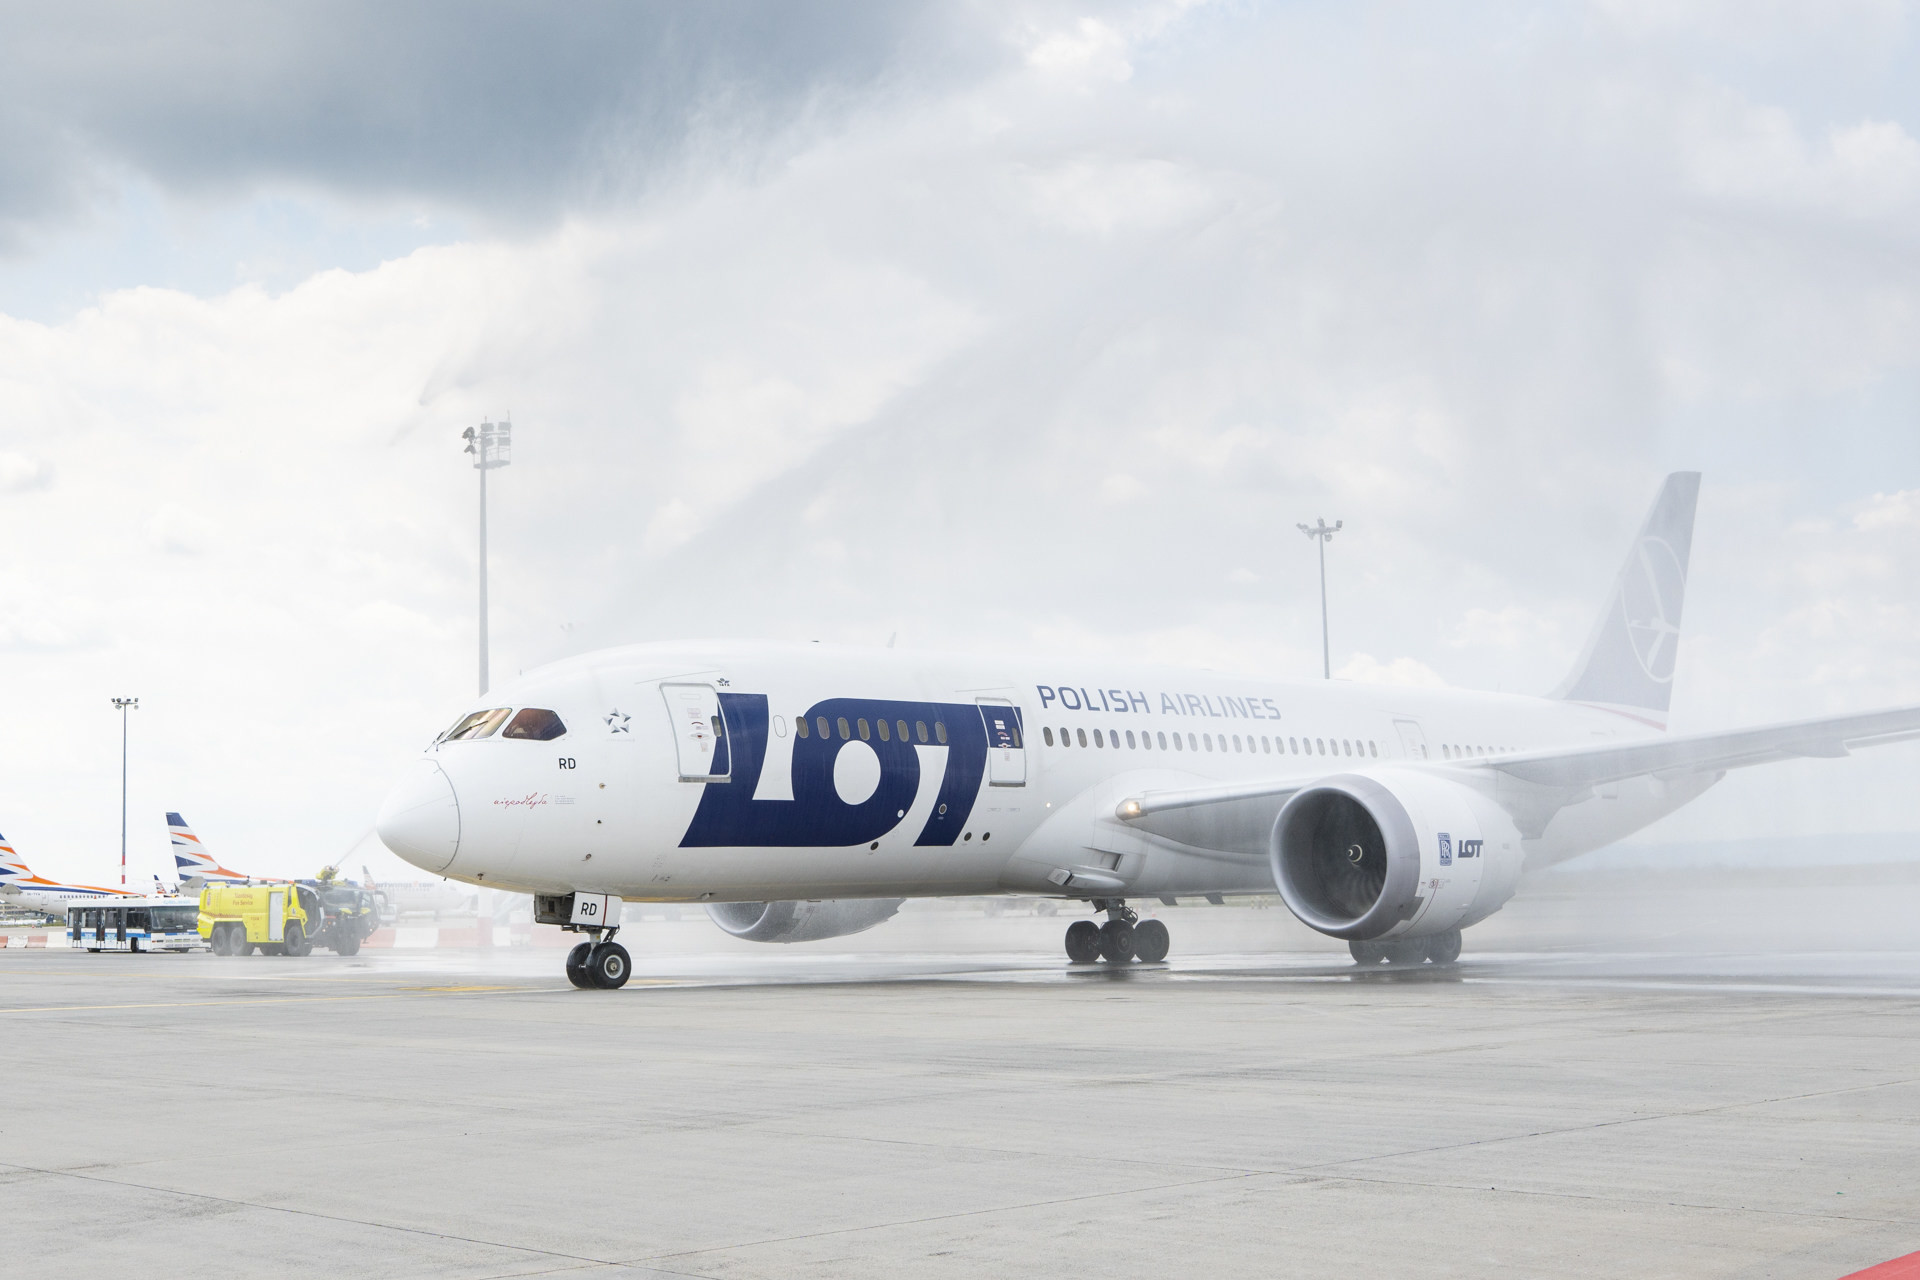 LOT Polish Airlines' Budapest-Seoul non-stop flight re-launched (Photo Budapest AirportBaranyi Róbert)